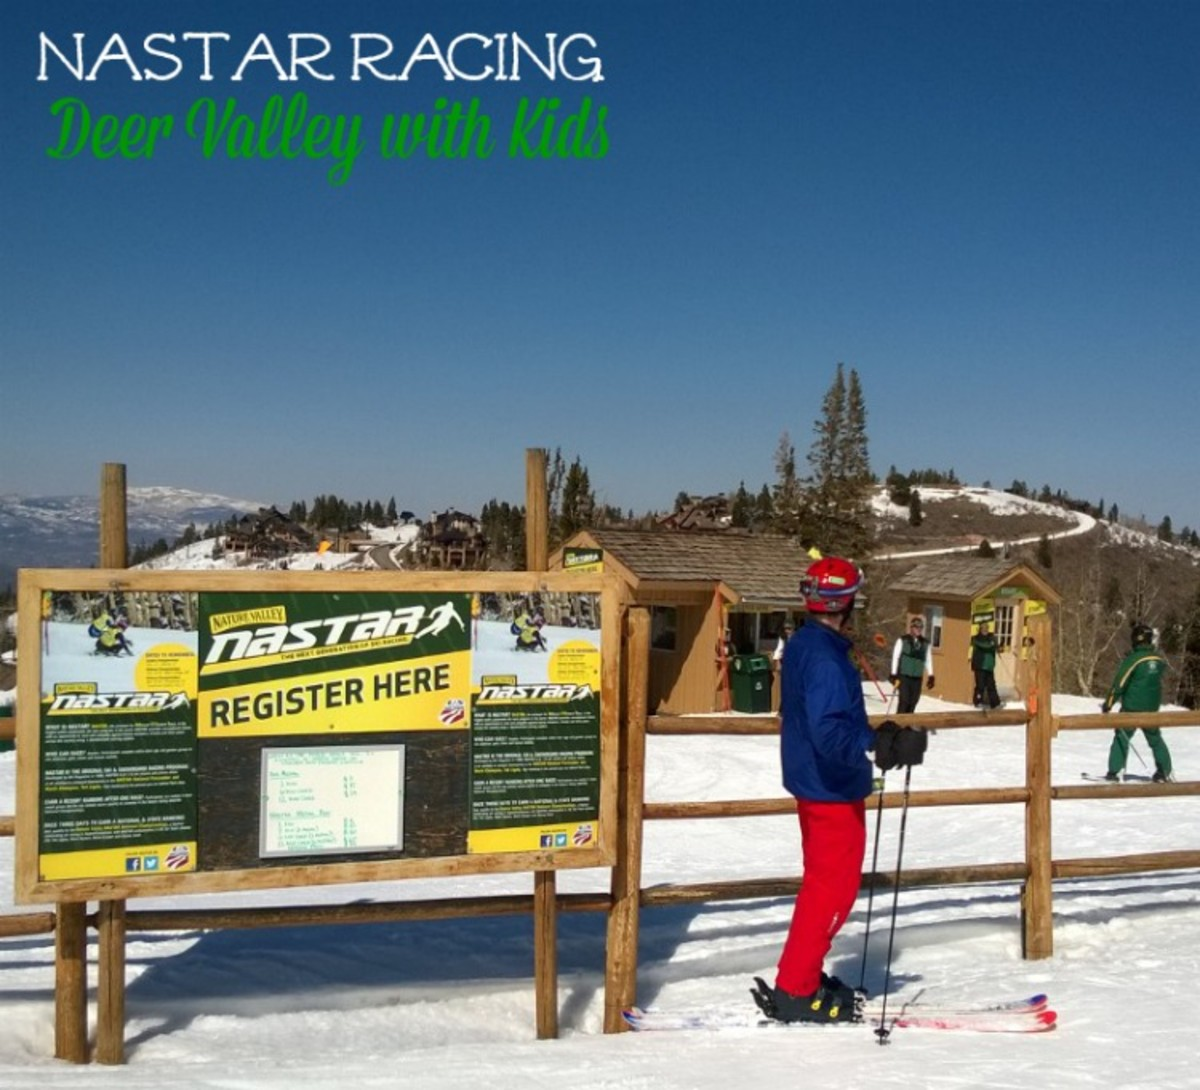 nastar racing deer valley